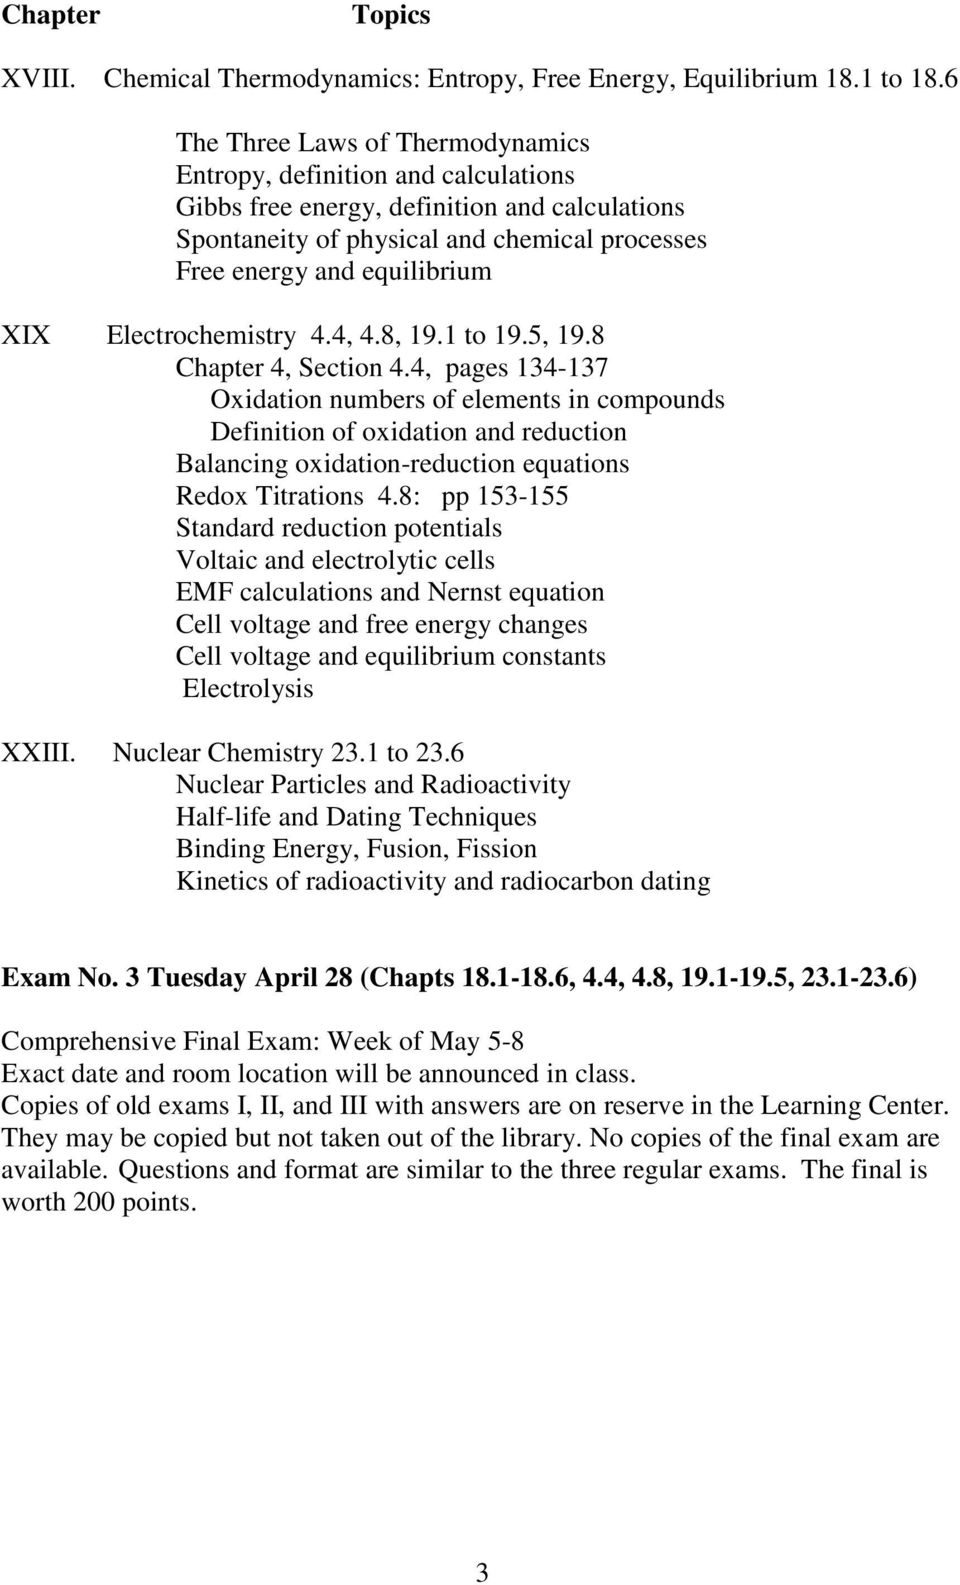 Electrochemistry 4.4, 4.8, 19.1 to 19.5, 19.8 Chapter 4, Section 4.